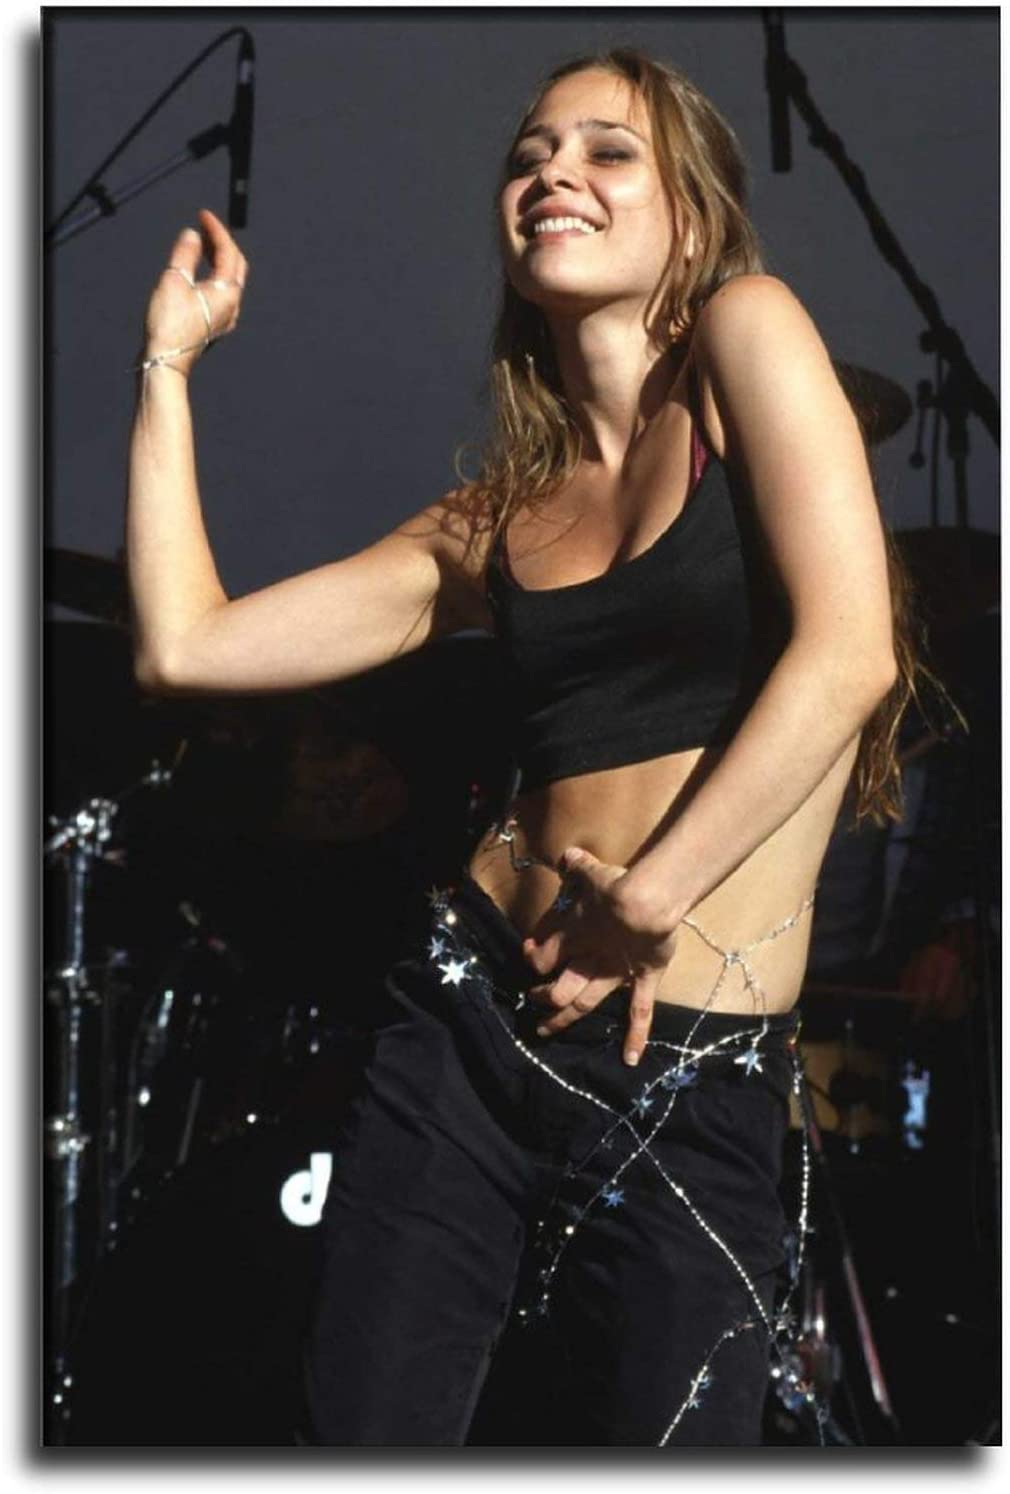 IUYT Famous Rock Singer Fiona Apple Sexy Dancing Poster Living Room Bedroom Mural Poster Decorative Painting Canvas Wall Art Living Room Posters Bedroom Painting 12×18inch(30×45cm)